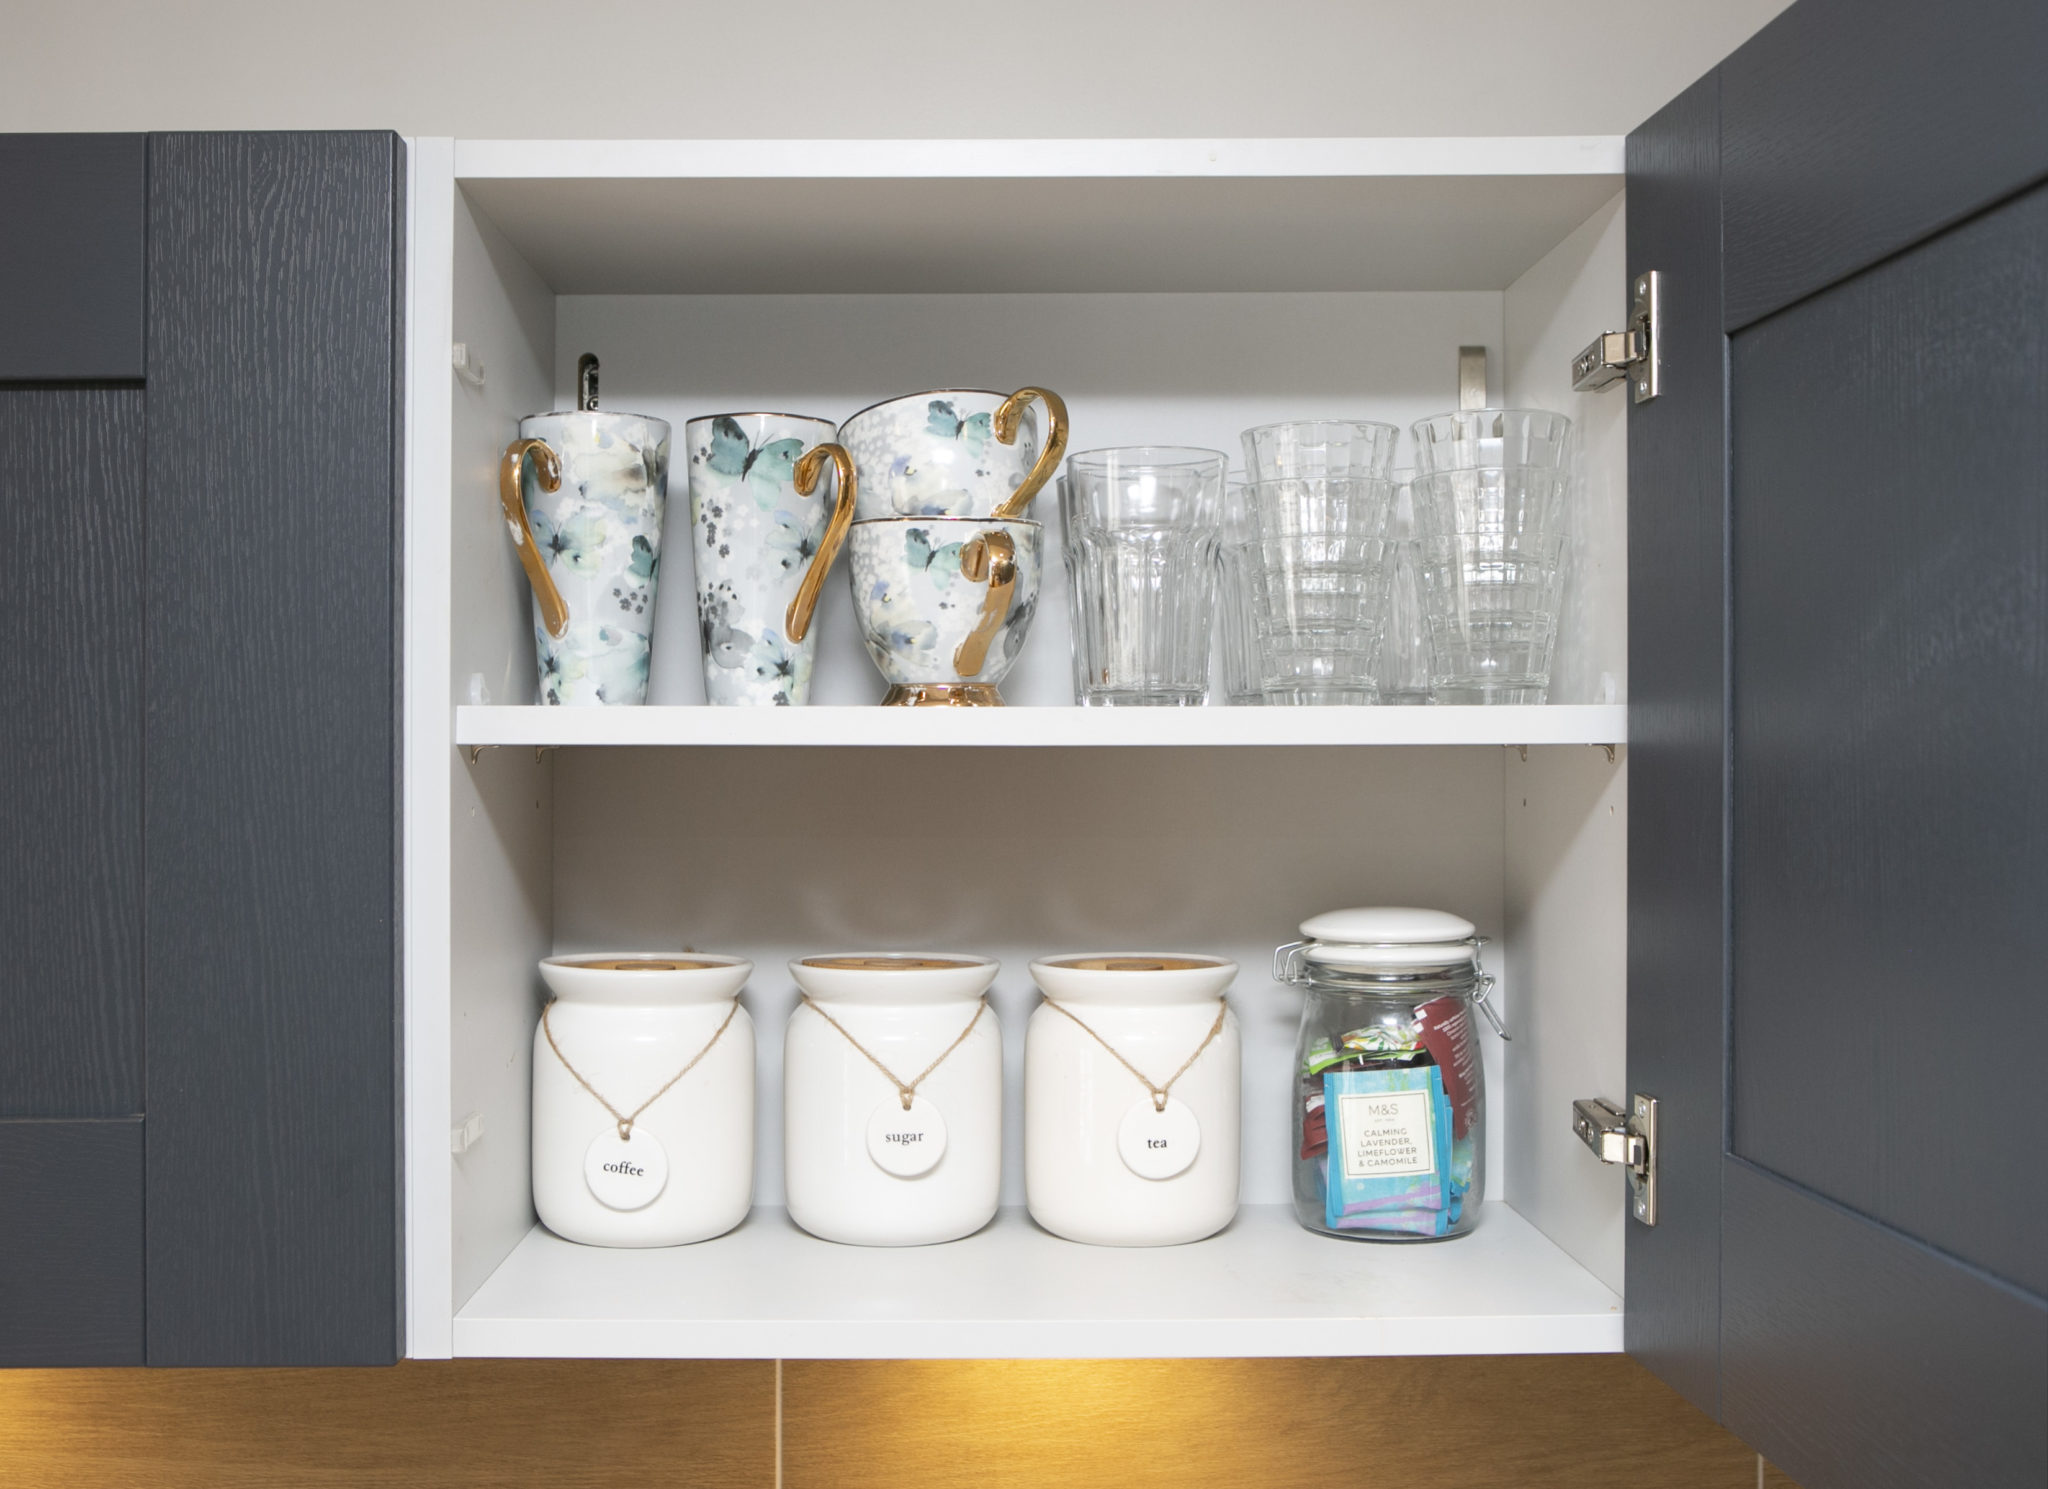 Tidy kitchen storage